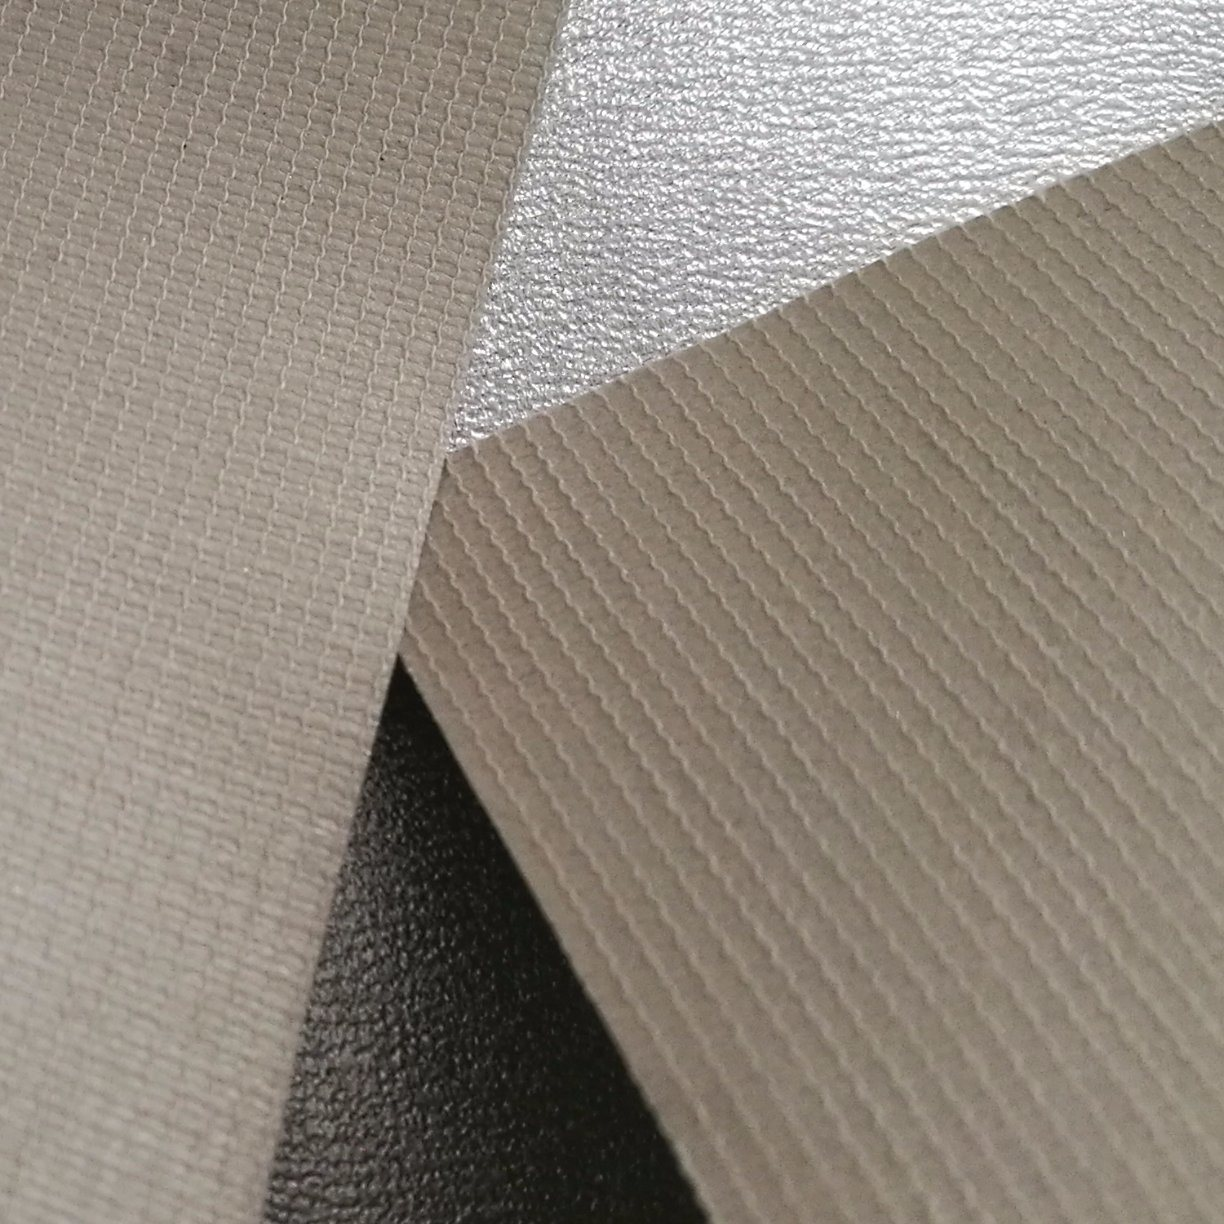 Silver Metallic Luster, Soft Leather, PVC Leather